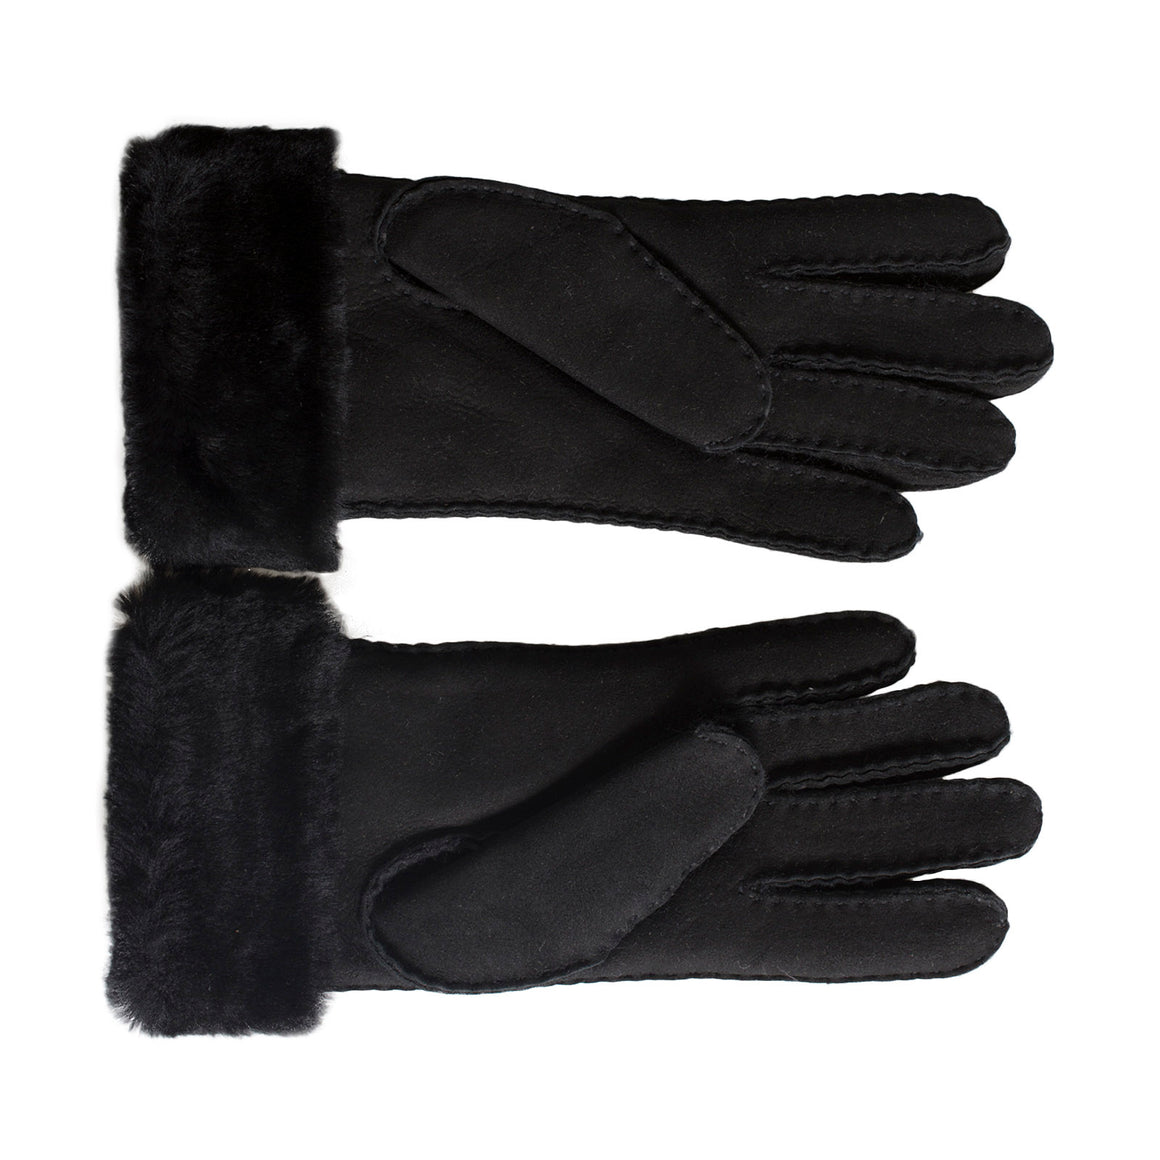 UGG Sheepskin Classic Turn Cuff Black Gloves - Women's